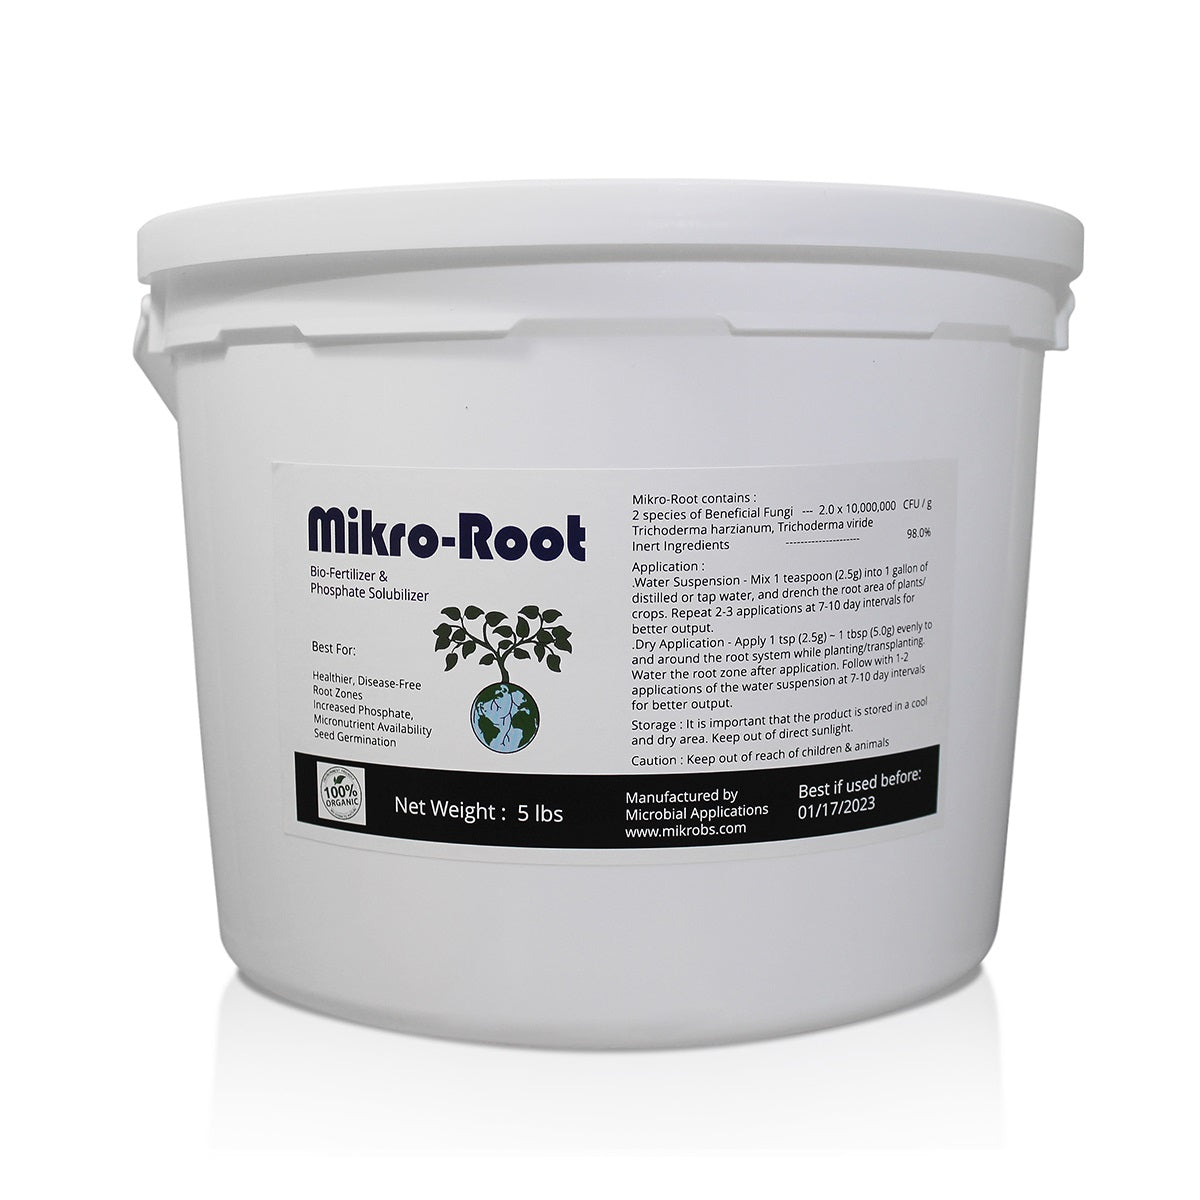 Mikro-Root Pail (5 lbs / 25 lbs)